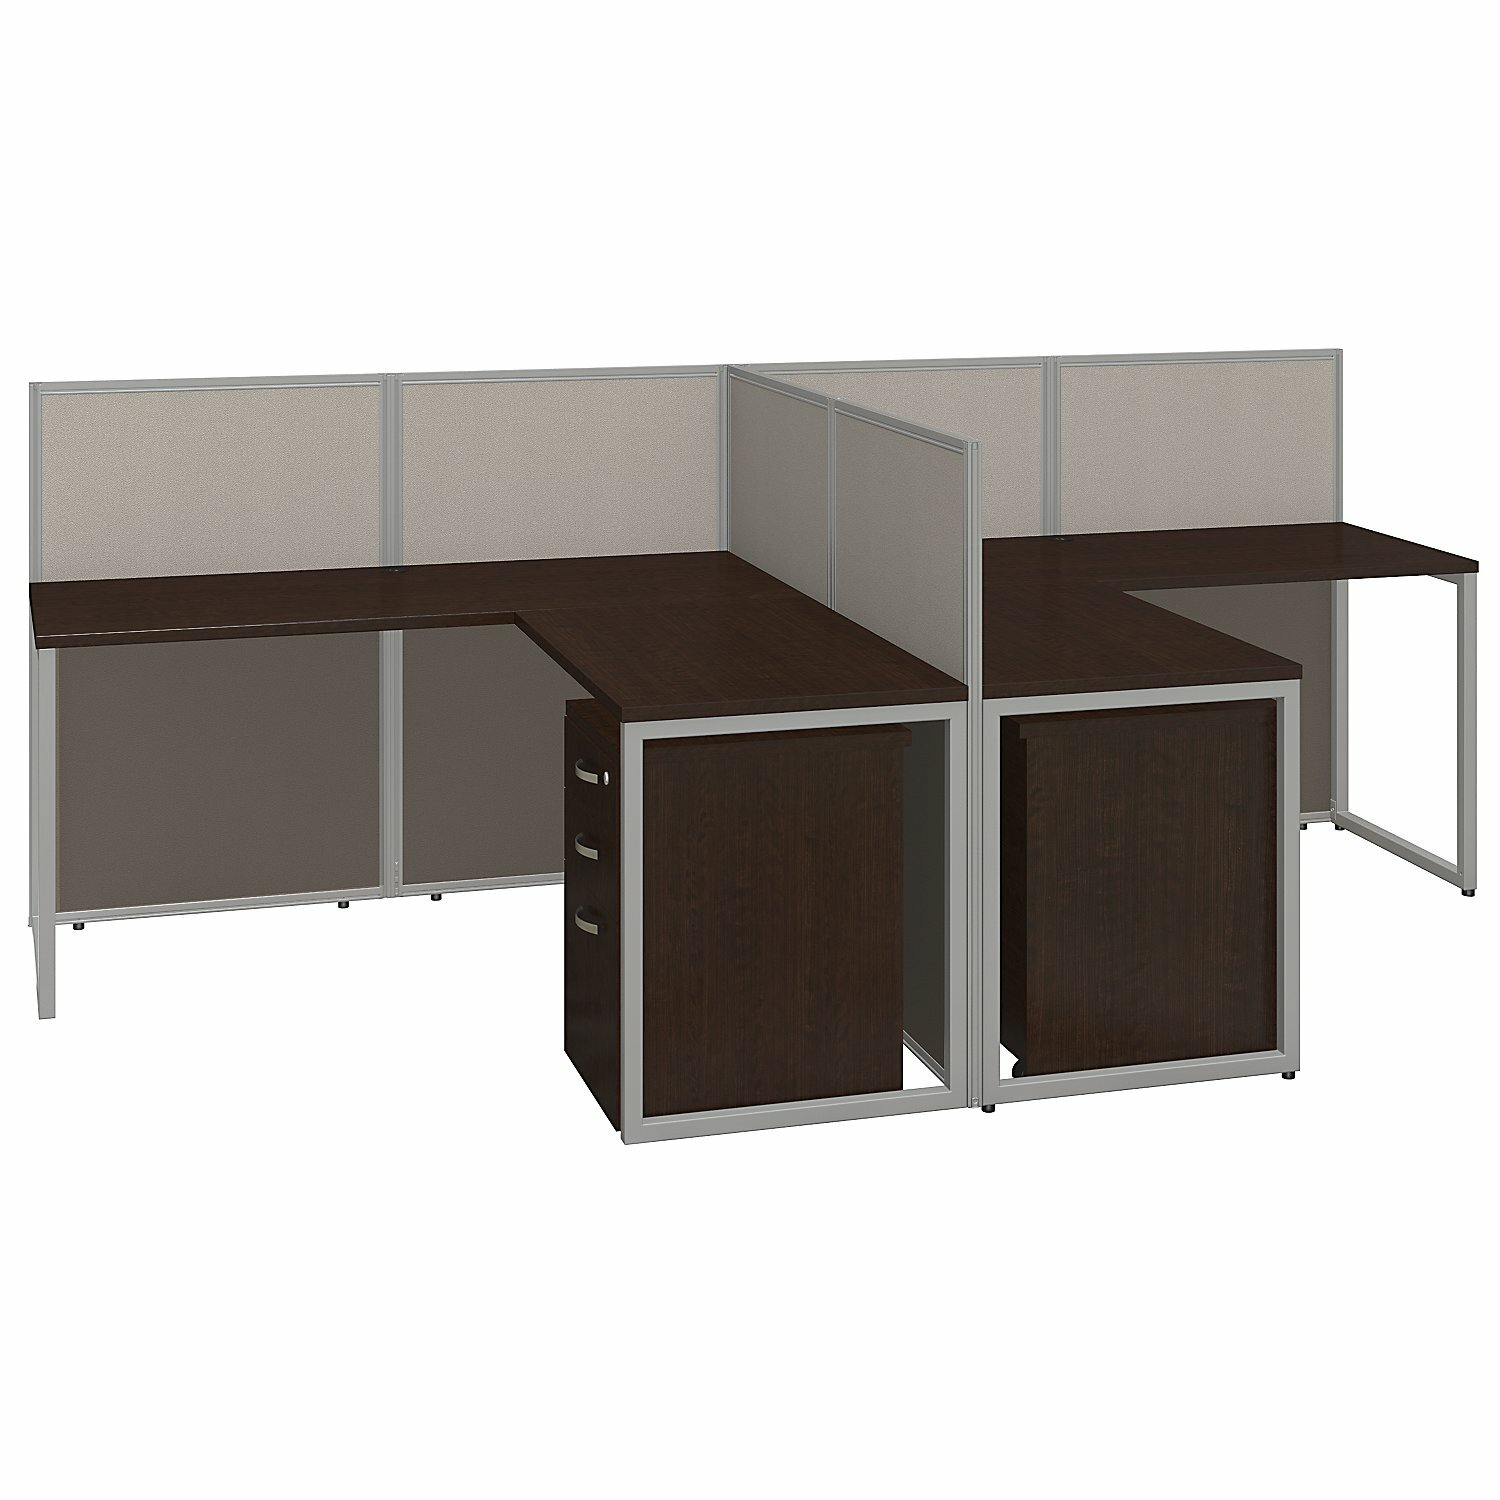 Bush Business Furniture Easy Office L Shape Desk Open Office With File Pedestals Reviews Wayfair